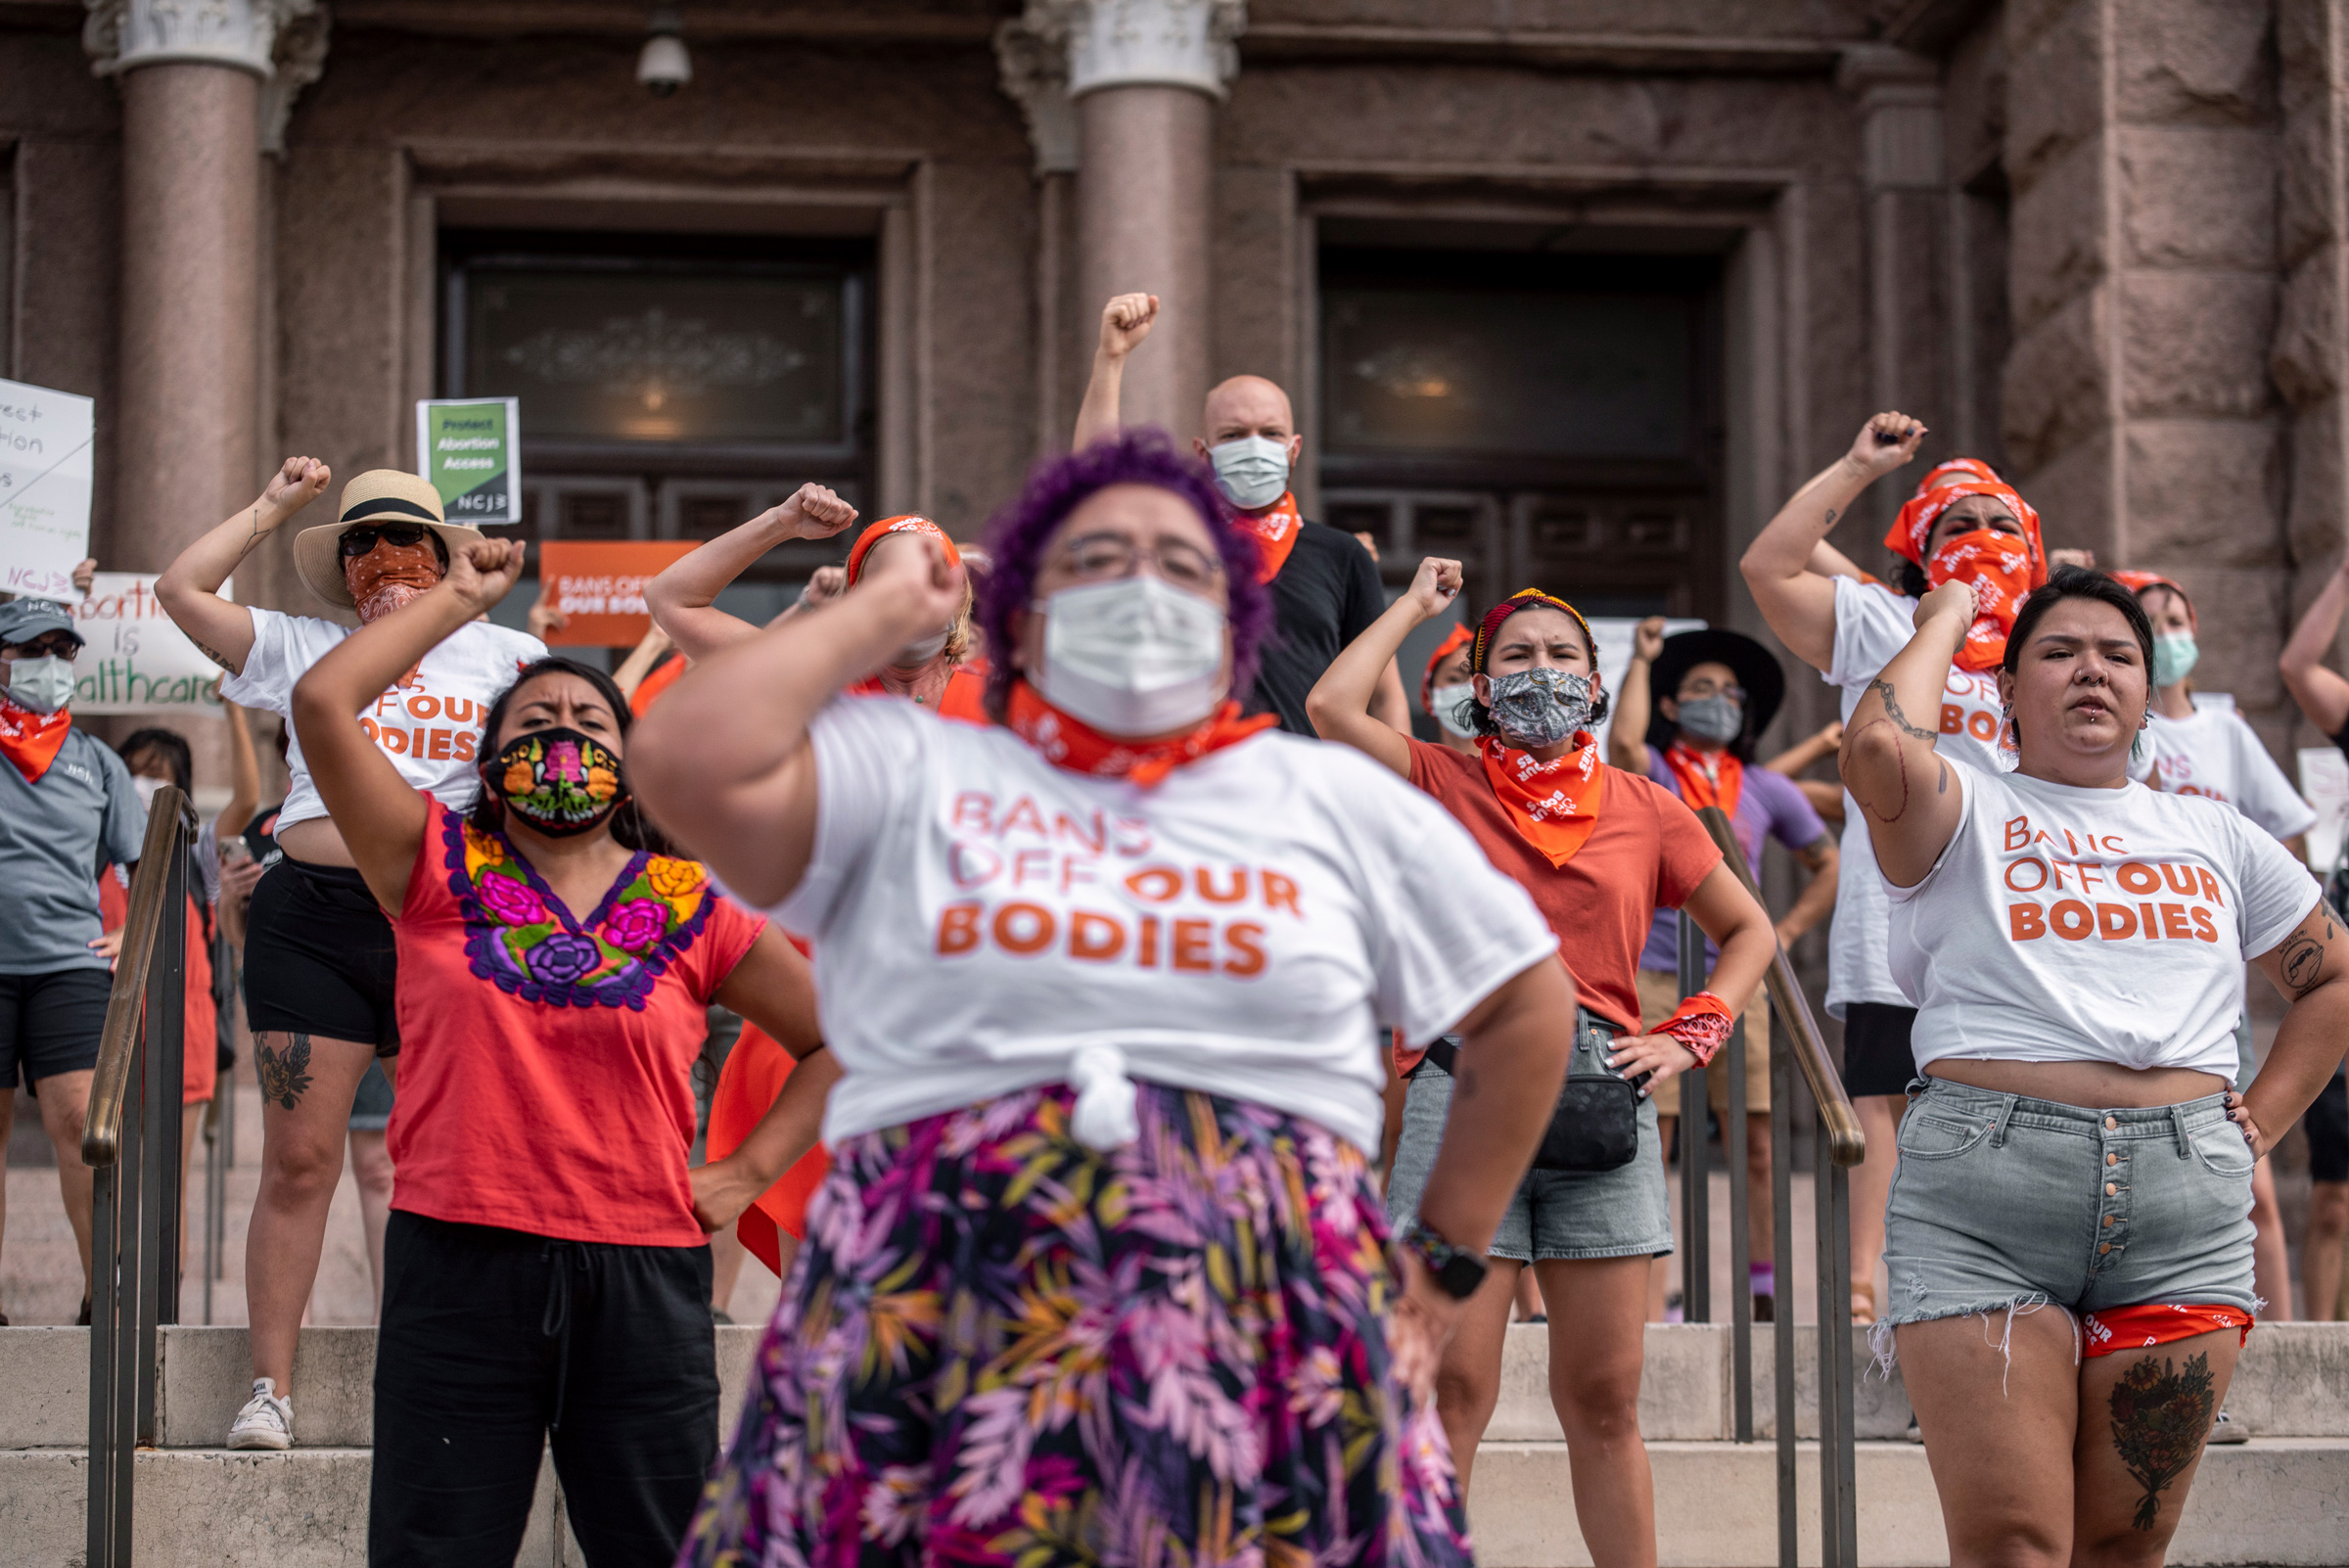 """Pro-choice protesters perform outside the Texas State Capitol on Wednesday, Sept. 1, 2021 in Austin, TX.They are wearing shirts that say """"Bans off our bodies"""" and raising their right fist"""